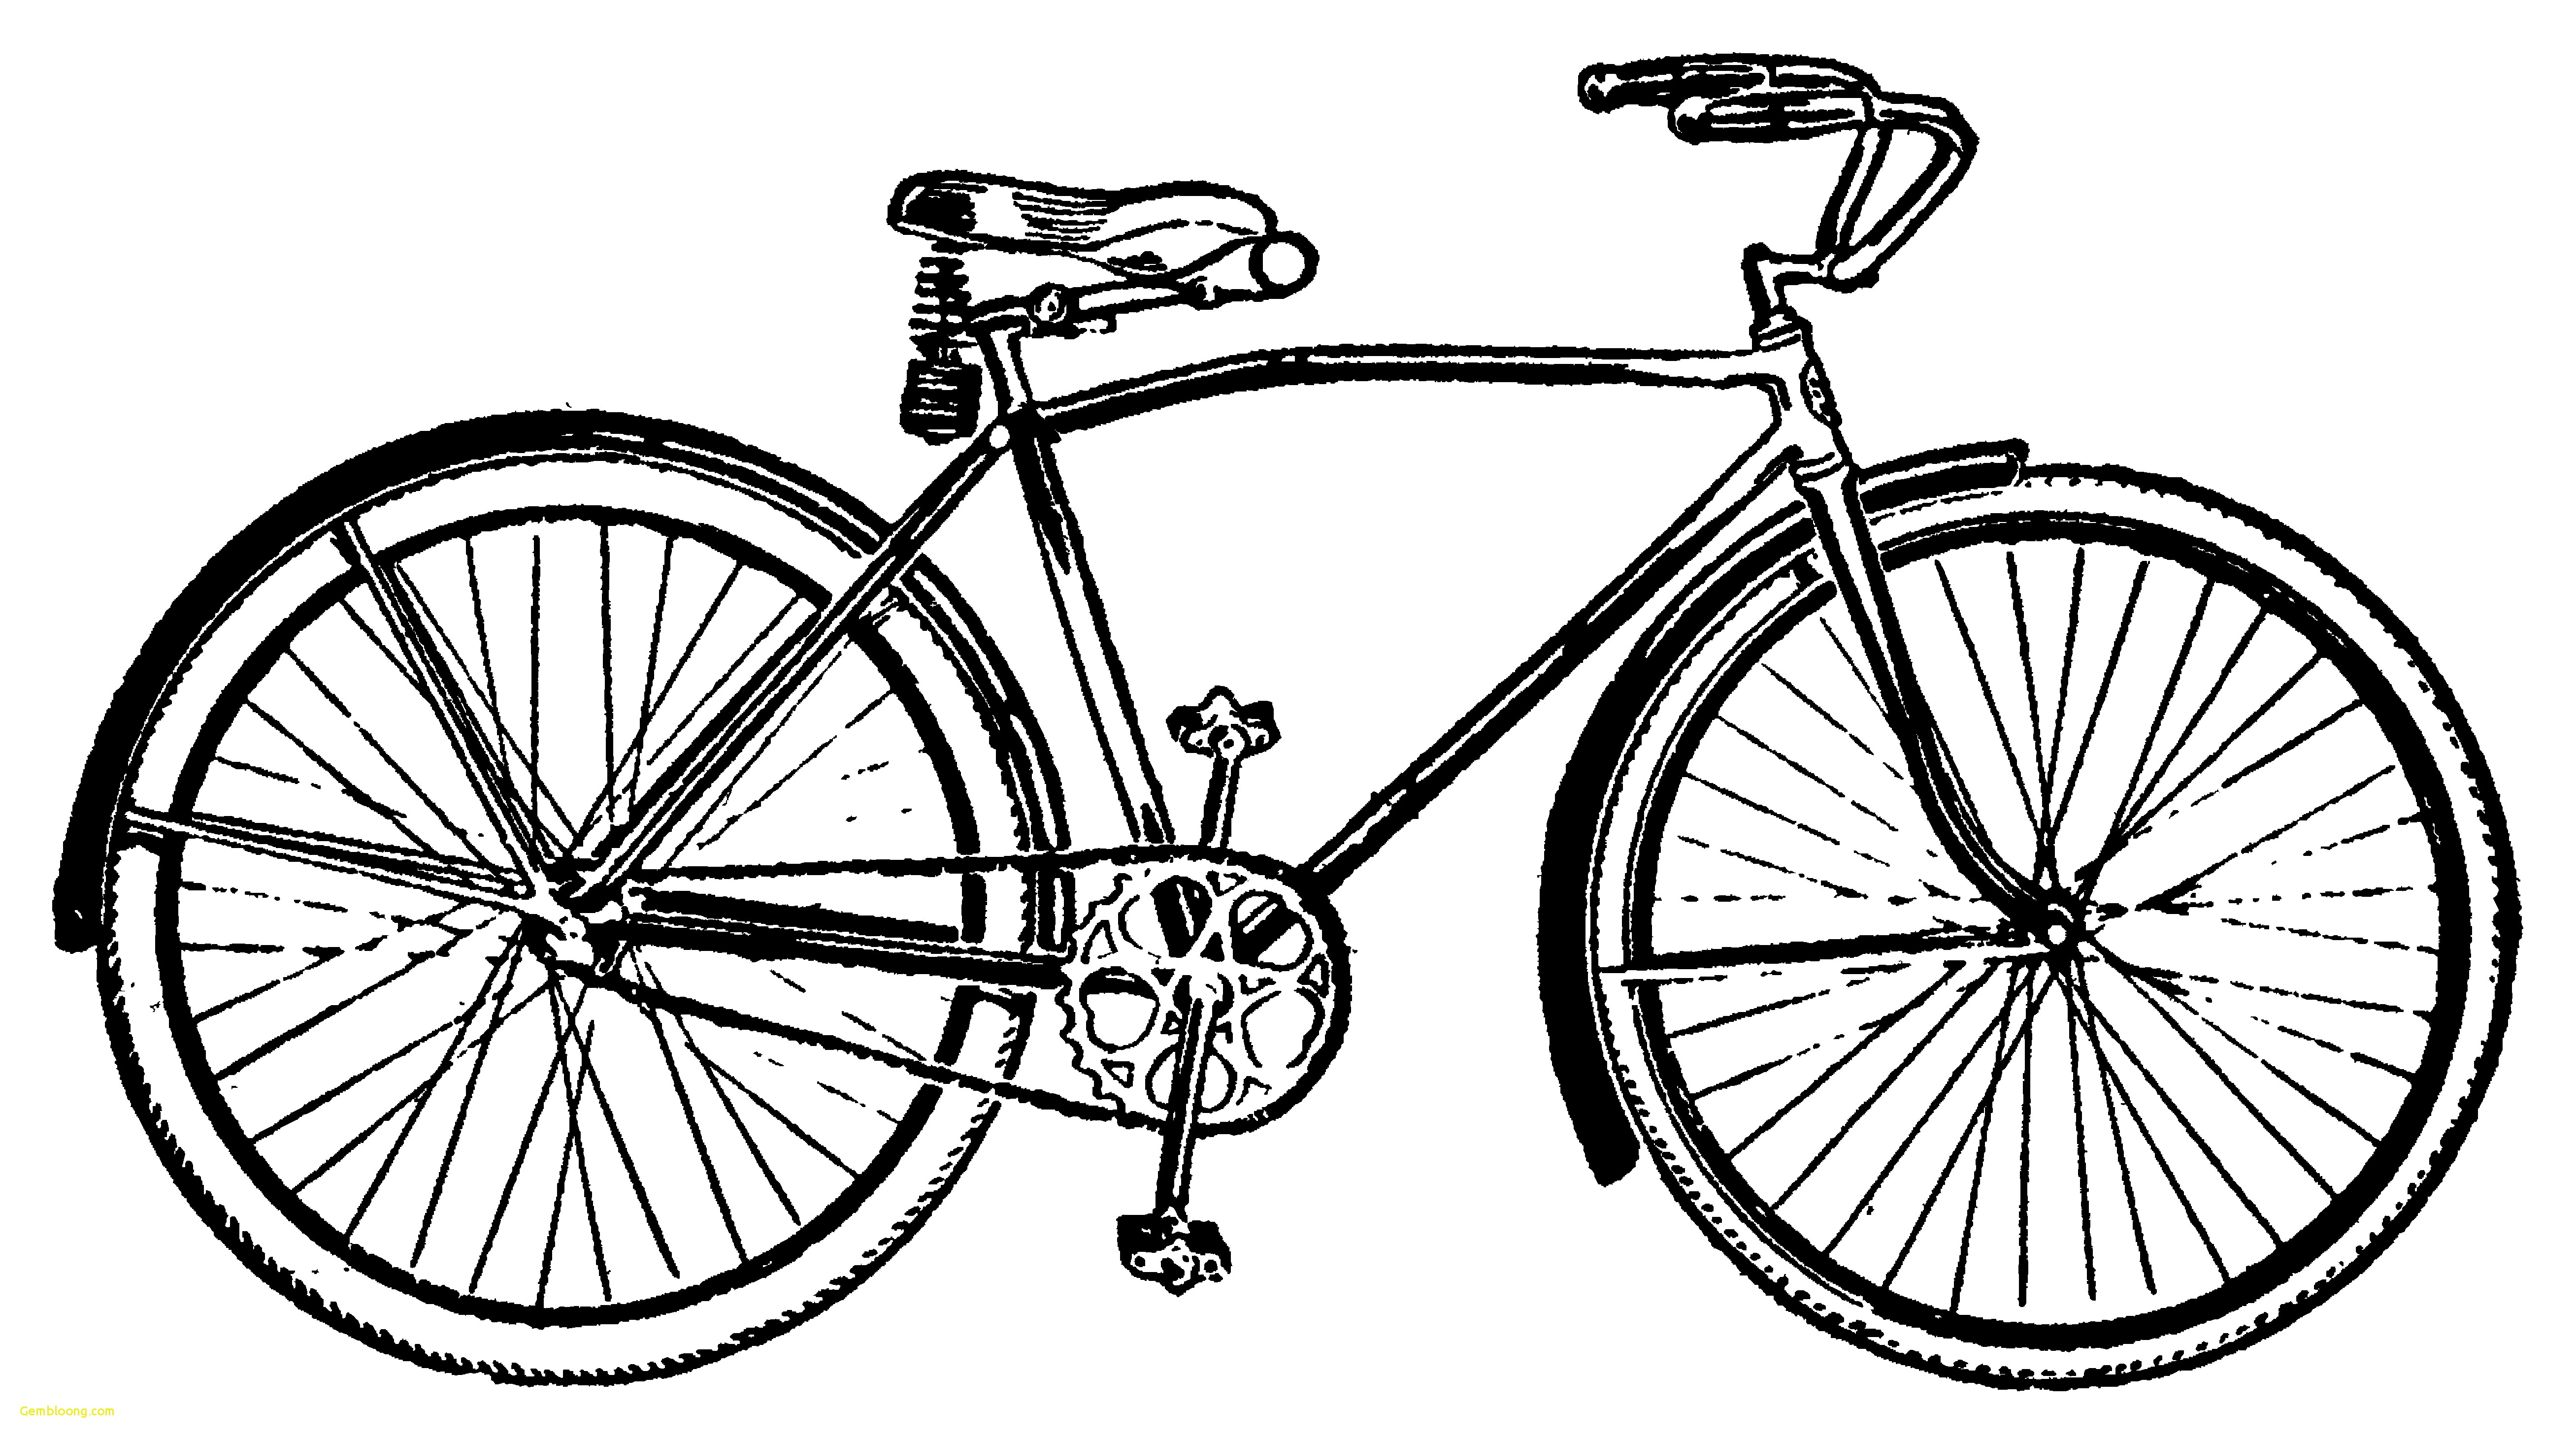 5230x2920 Bicycle Vector Art Free Download Luxury Vintage Bicycle Clipart